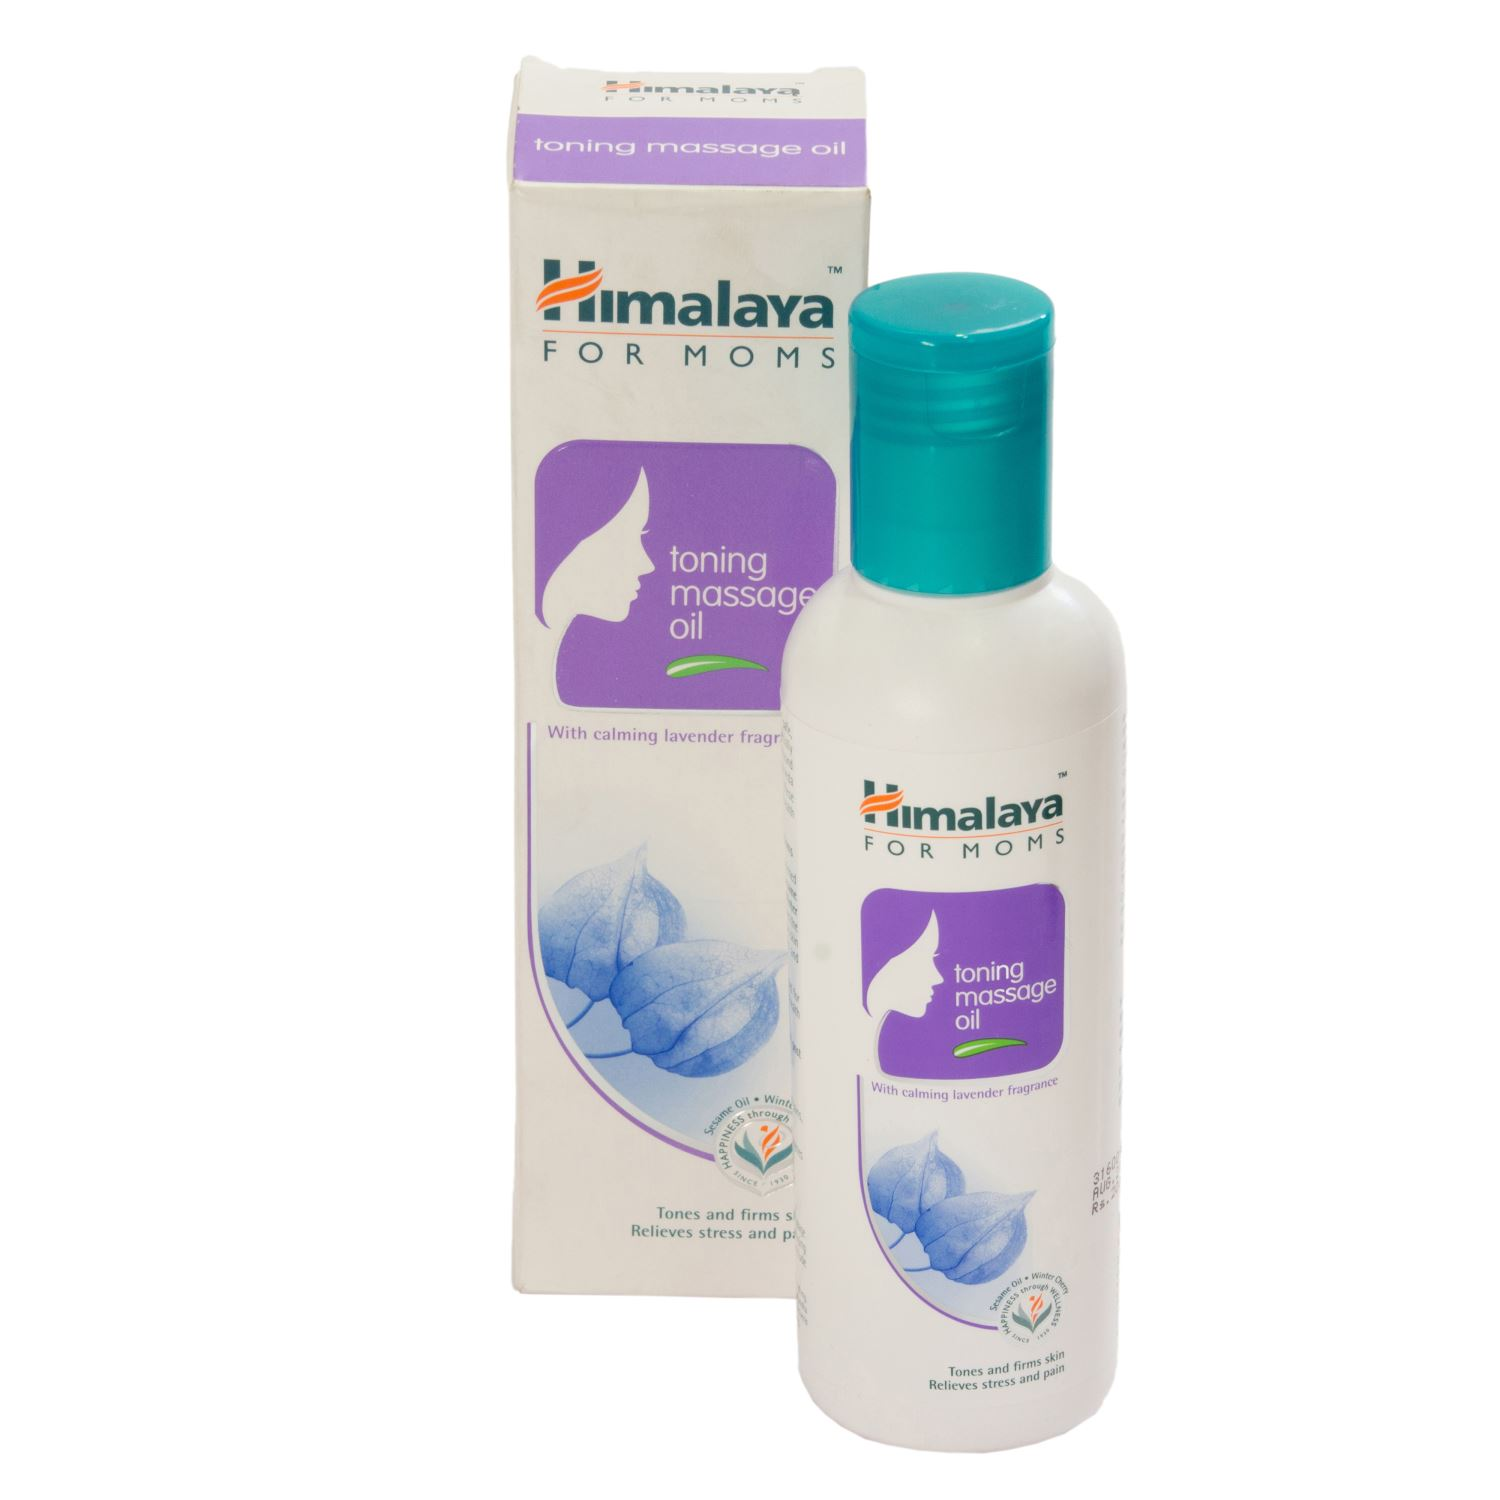 Himalaya For Moms Tonning Massage Oil - 200 ml